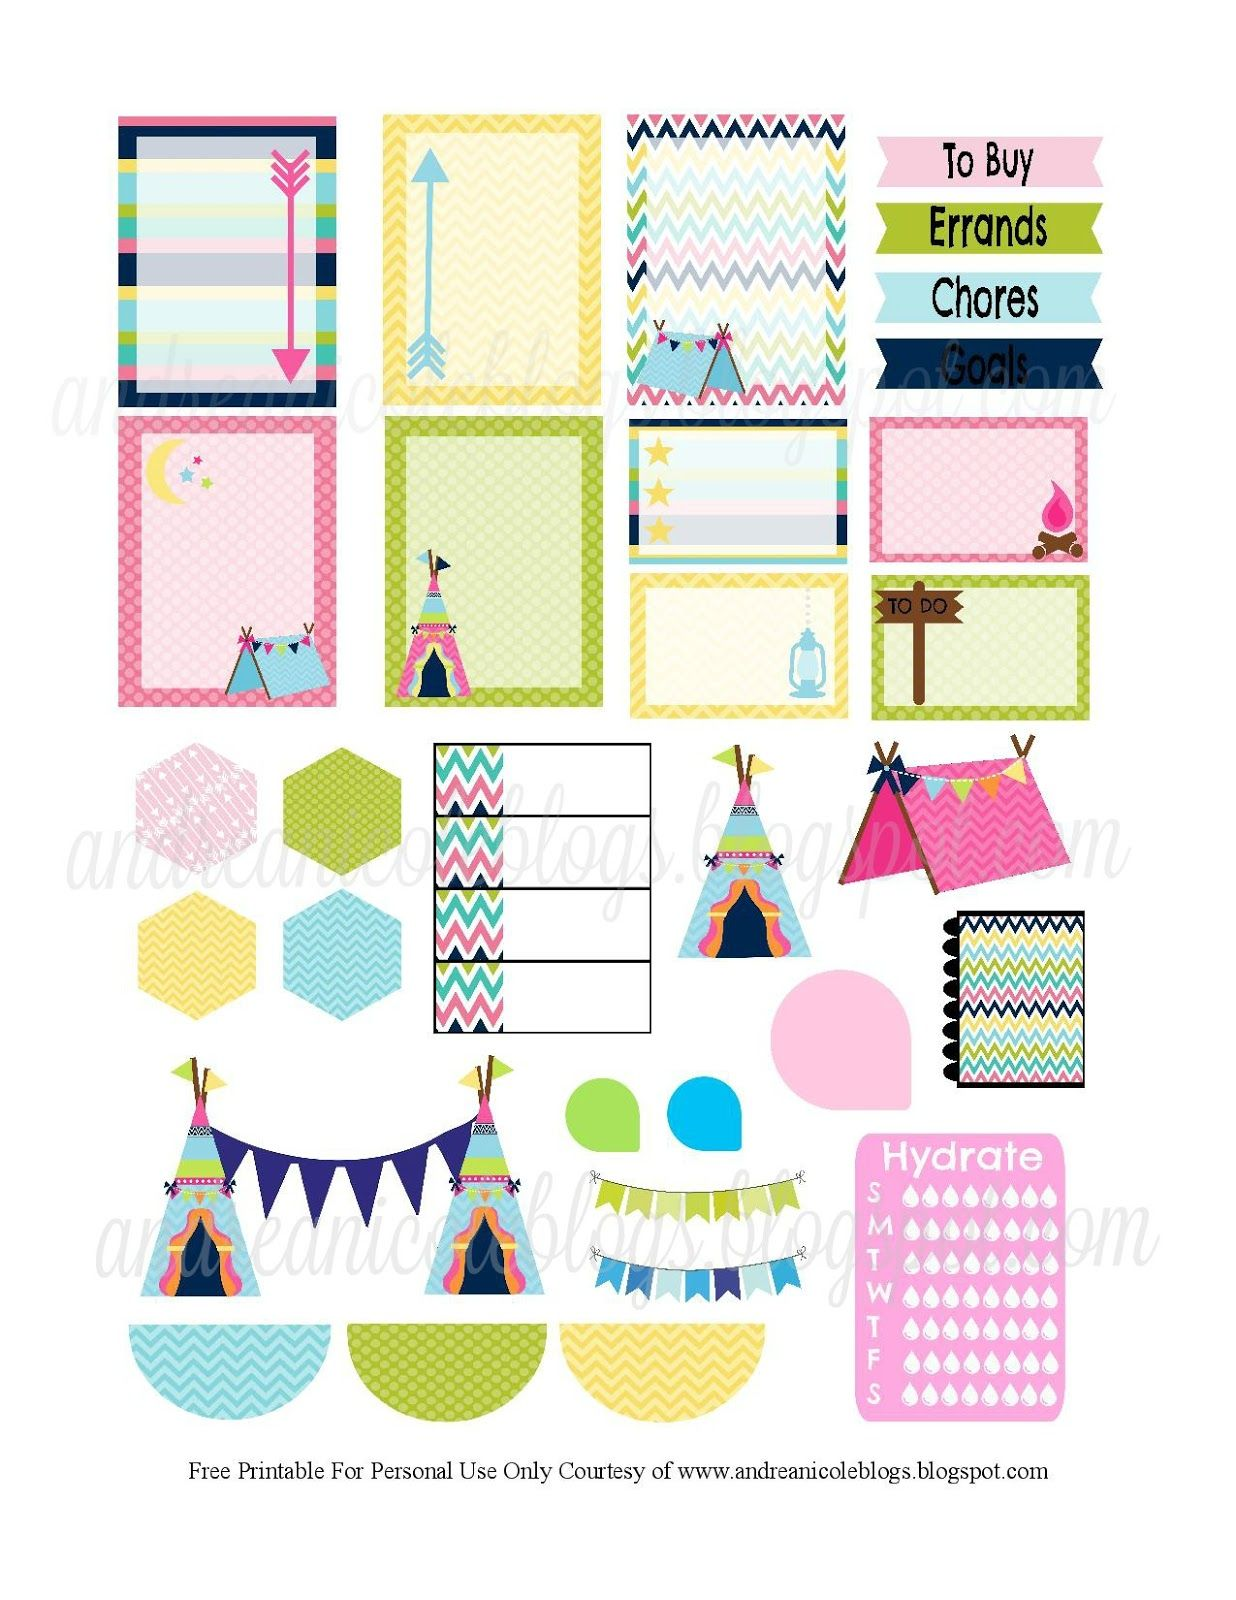 Andrea Nicole Blogs Glamping Planner Page Decor Free Printable ...